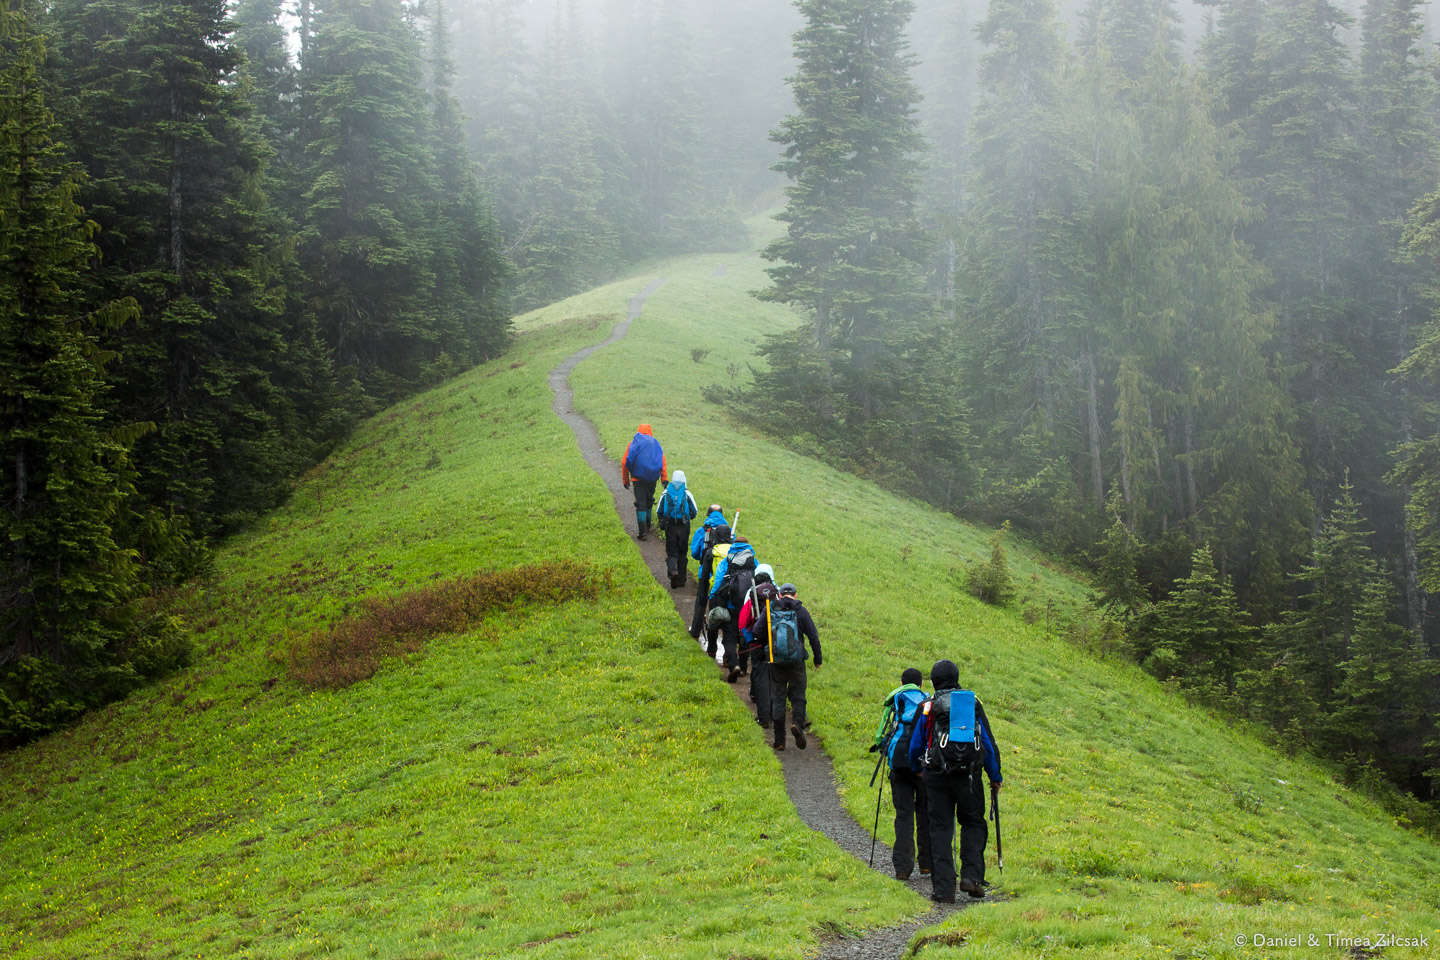 Our large group hiking back to Hurricane Ridge, after a successful Mount Angeles Summit